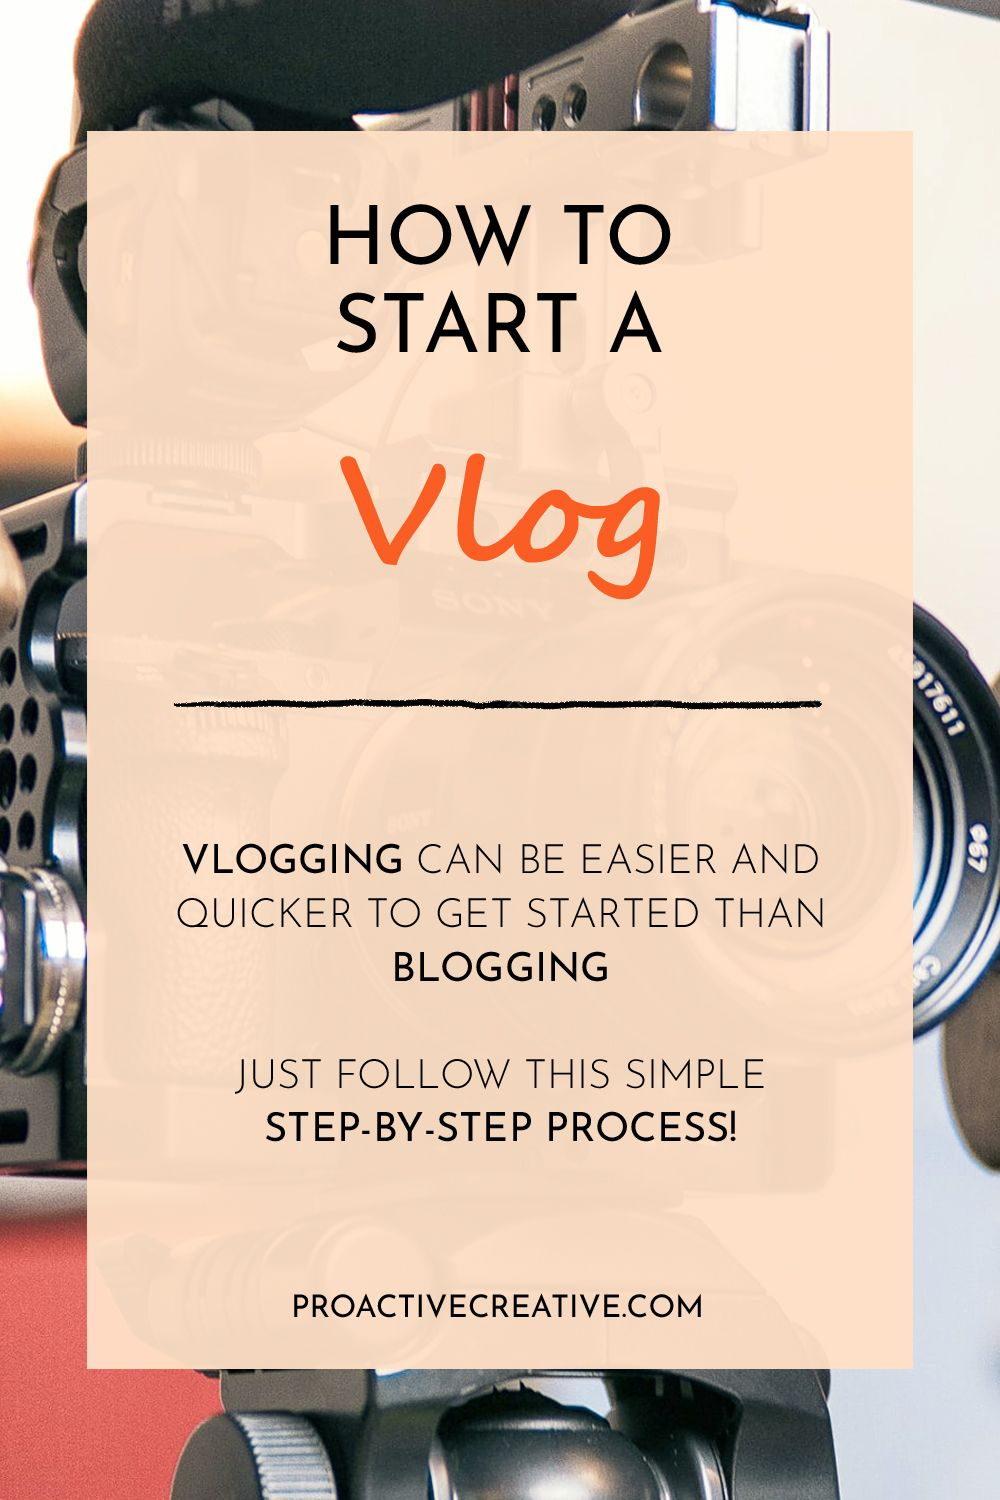 How to Start a Vlog